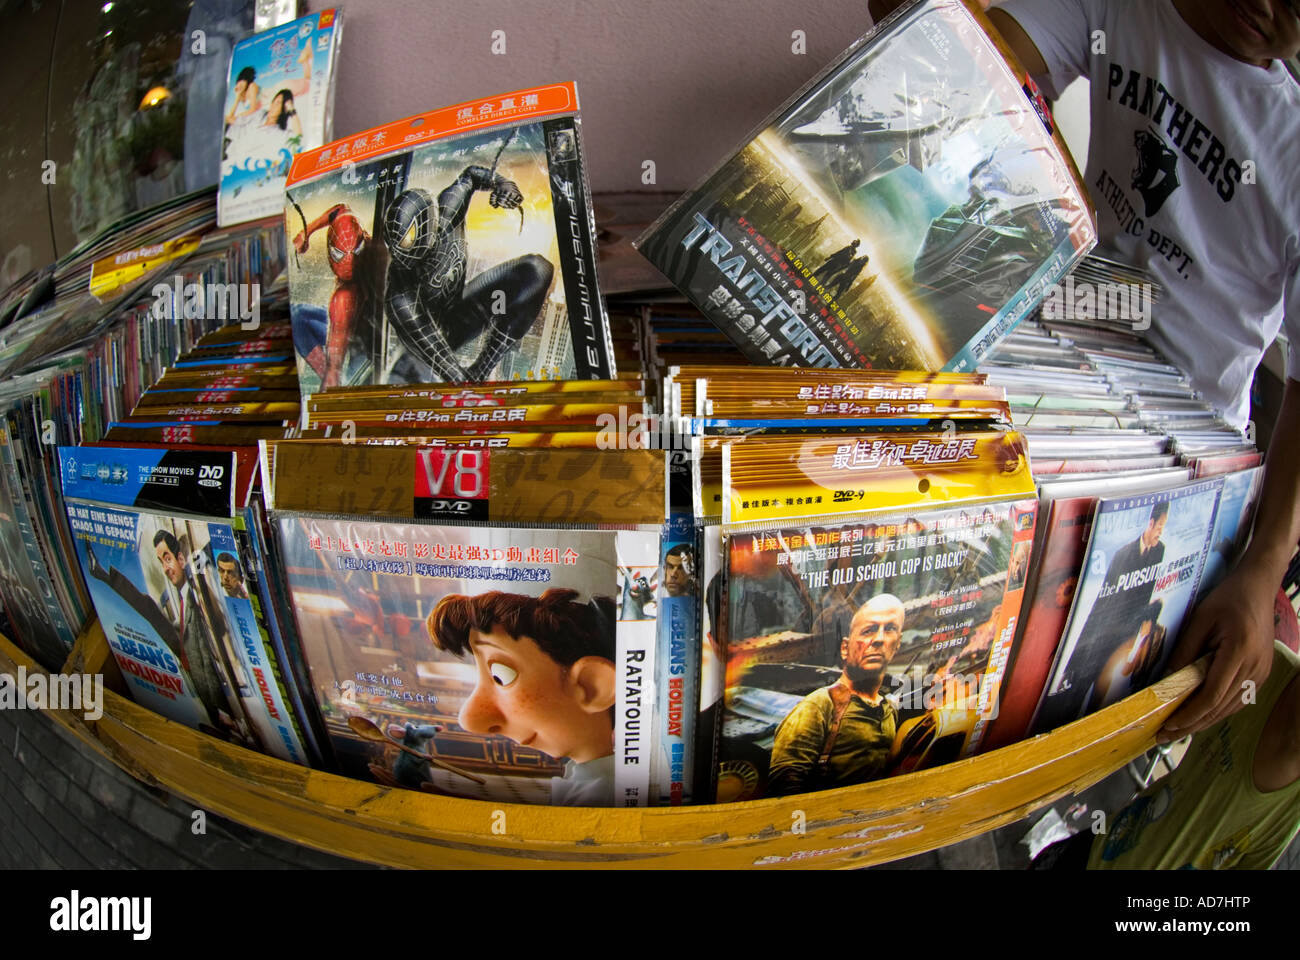 Counterfeit DVD movies for sale on a stall on Shanghai Street - Stock Image